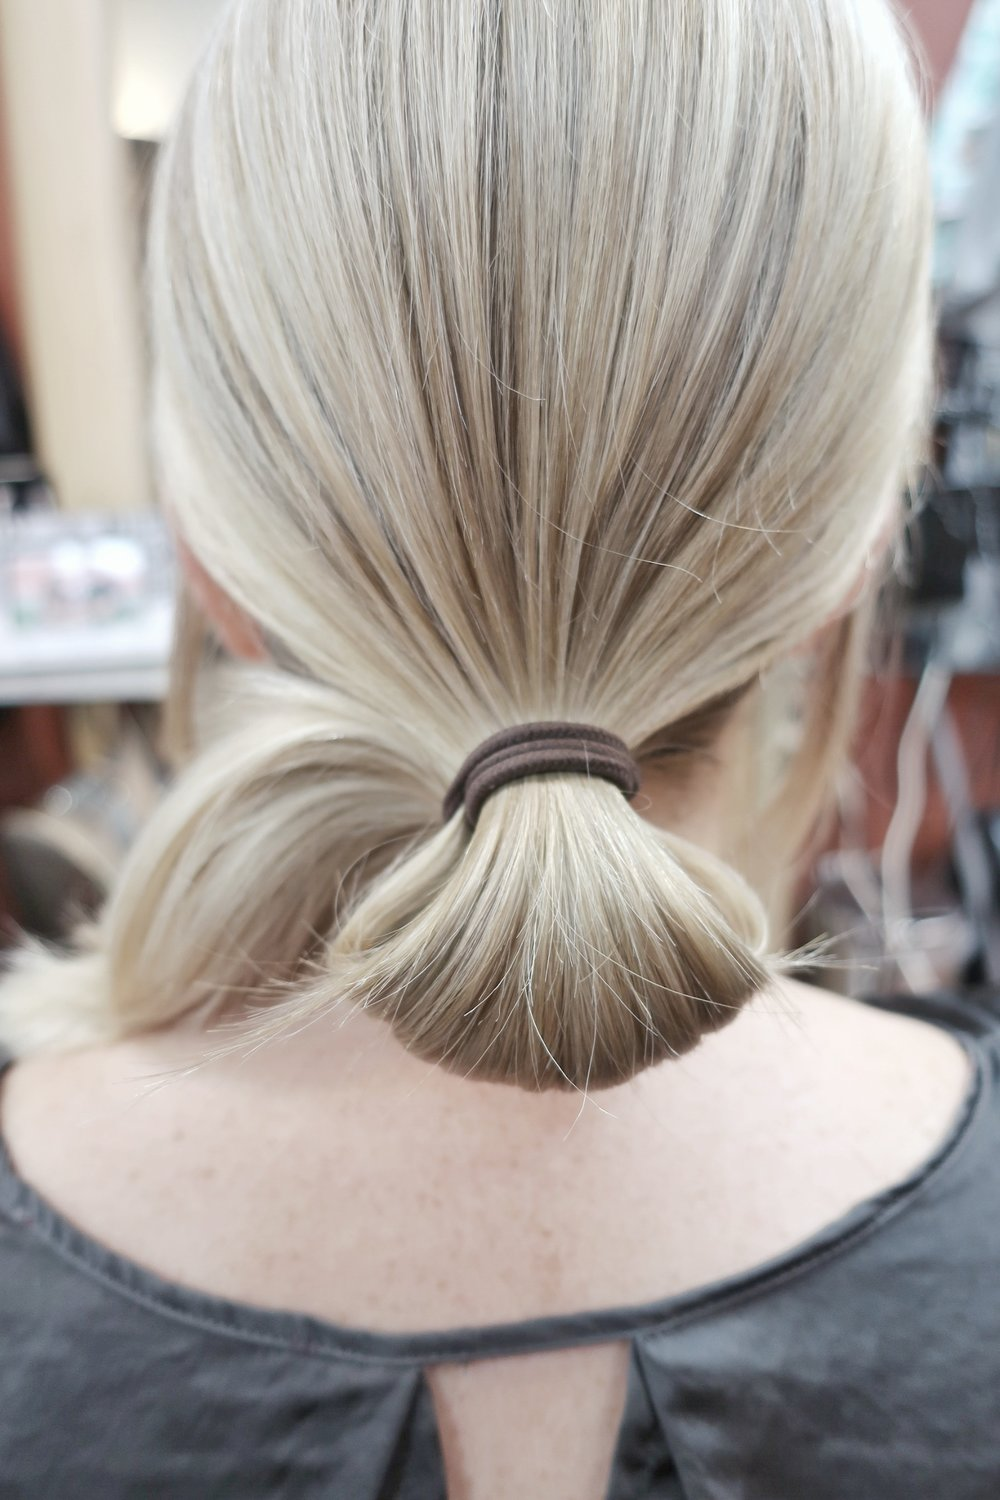 Tie hair with hair tie and when wrapping the last time leave hair into a bun like photo